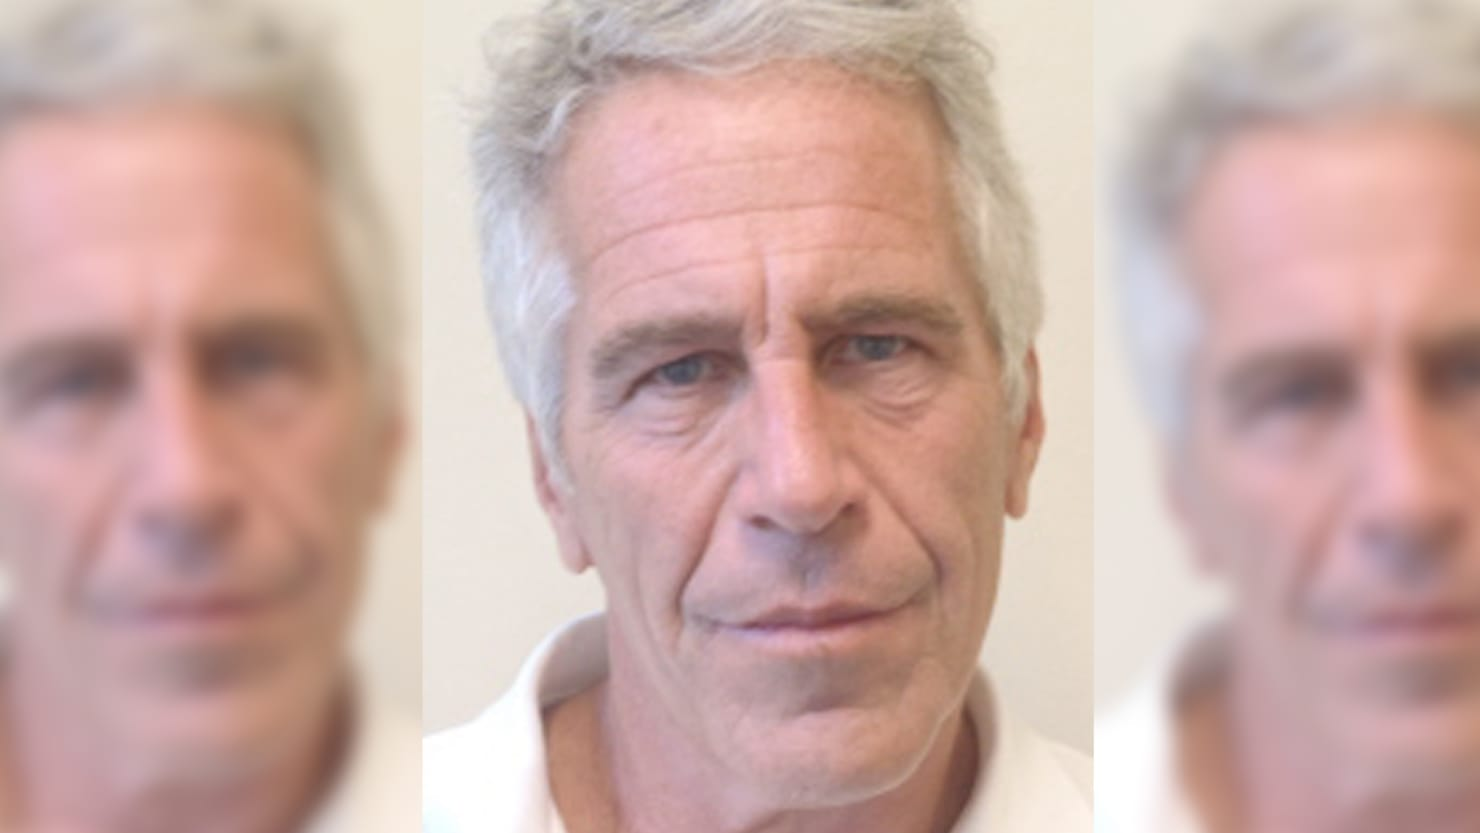 Jeffrey Epstein Loses Fight for Release on Bail